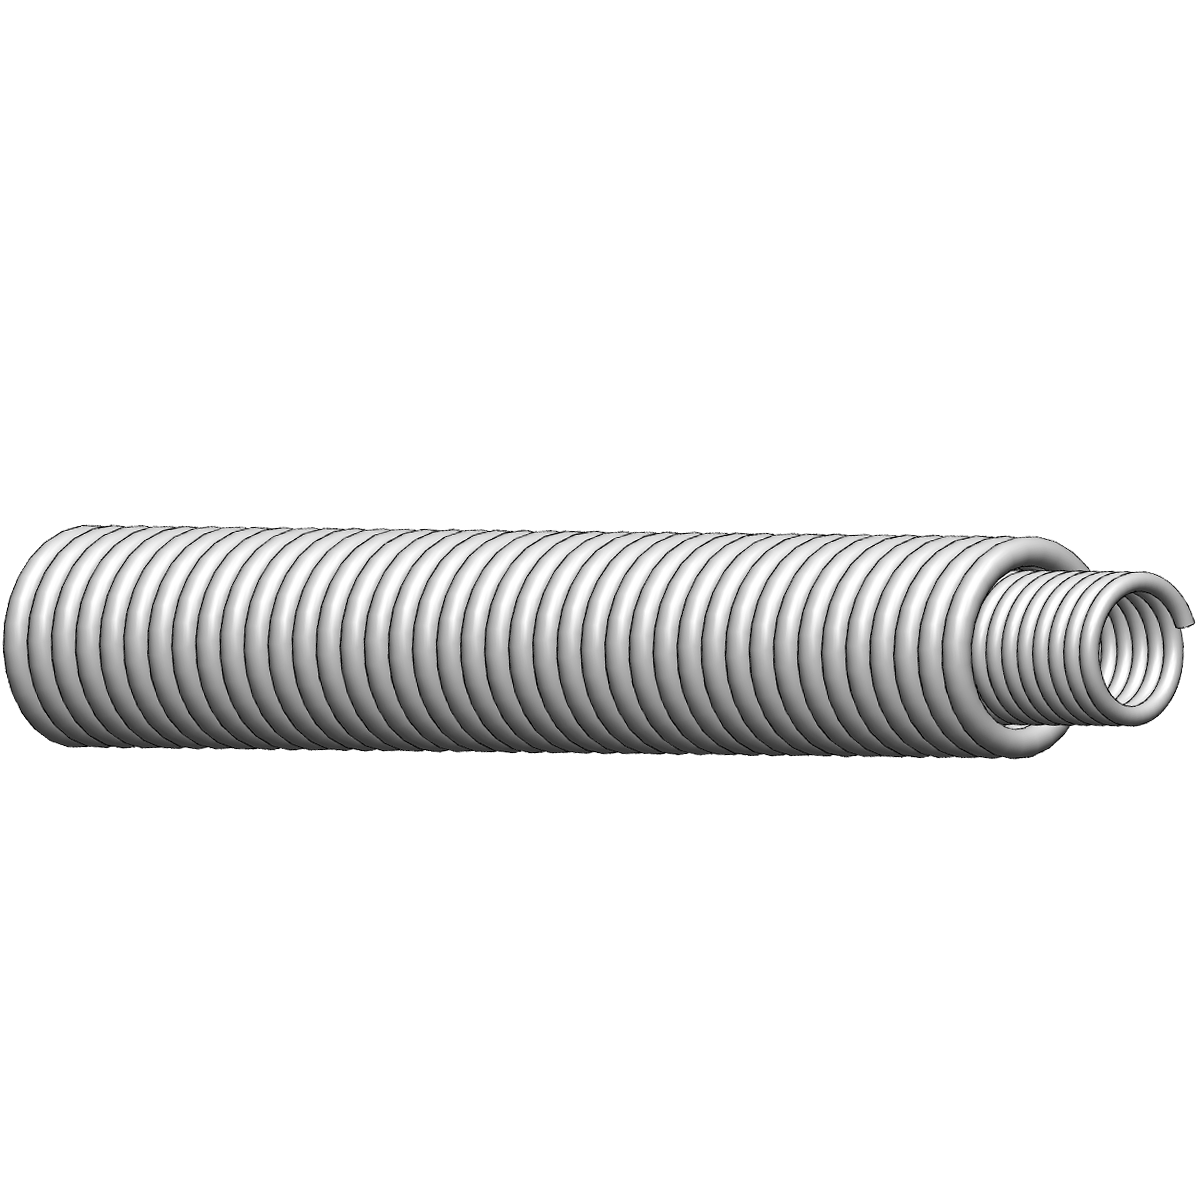 Springs for Radial Shaft Seals